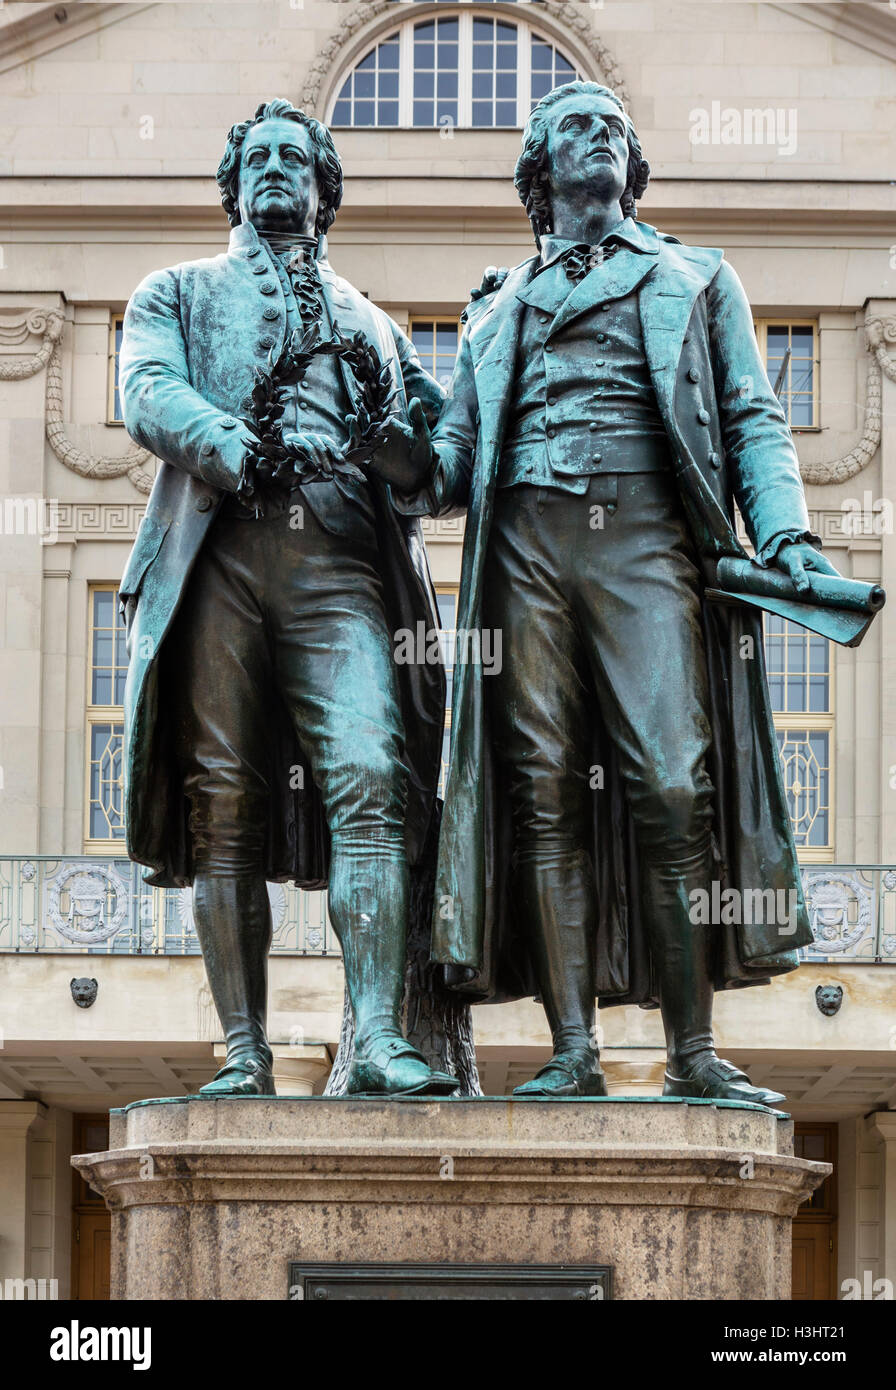 Goethe–Schiller Monument in front of the Deutches Nationaltheater, Theaterplatz, Weimar, Thuringia, Germany - Stock Image